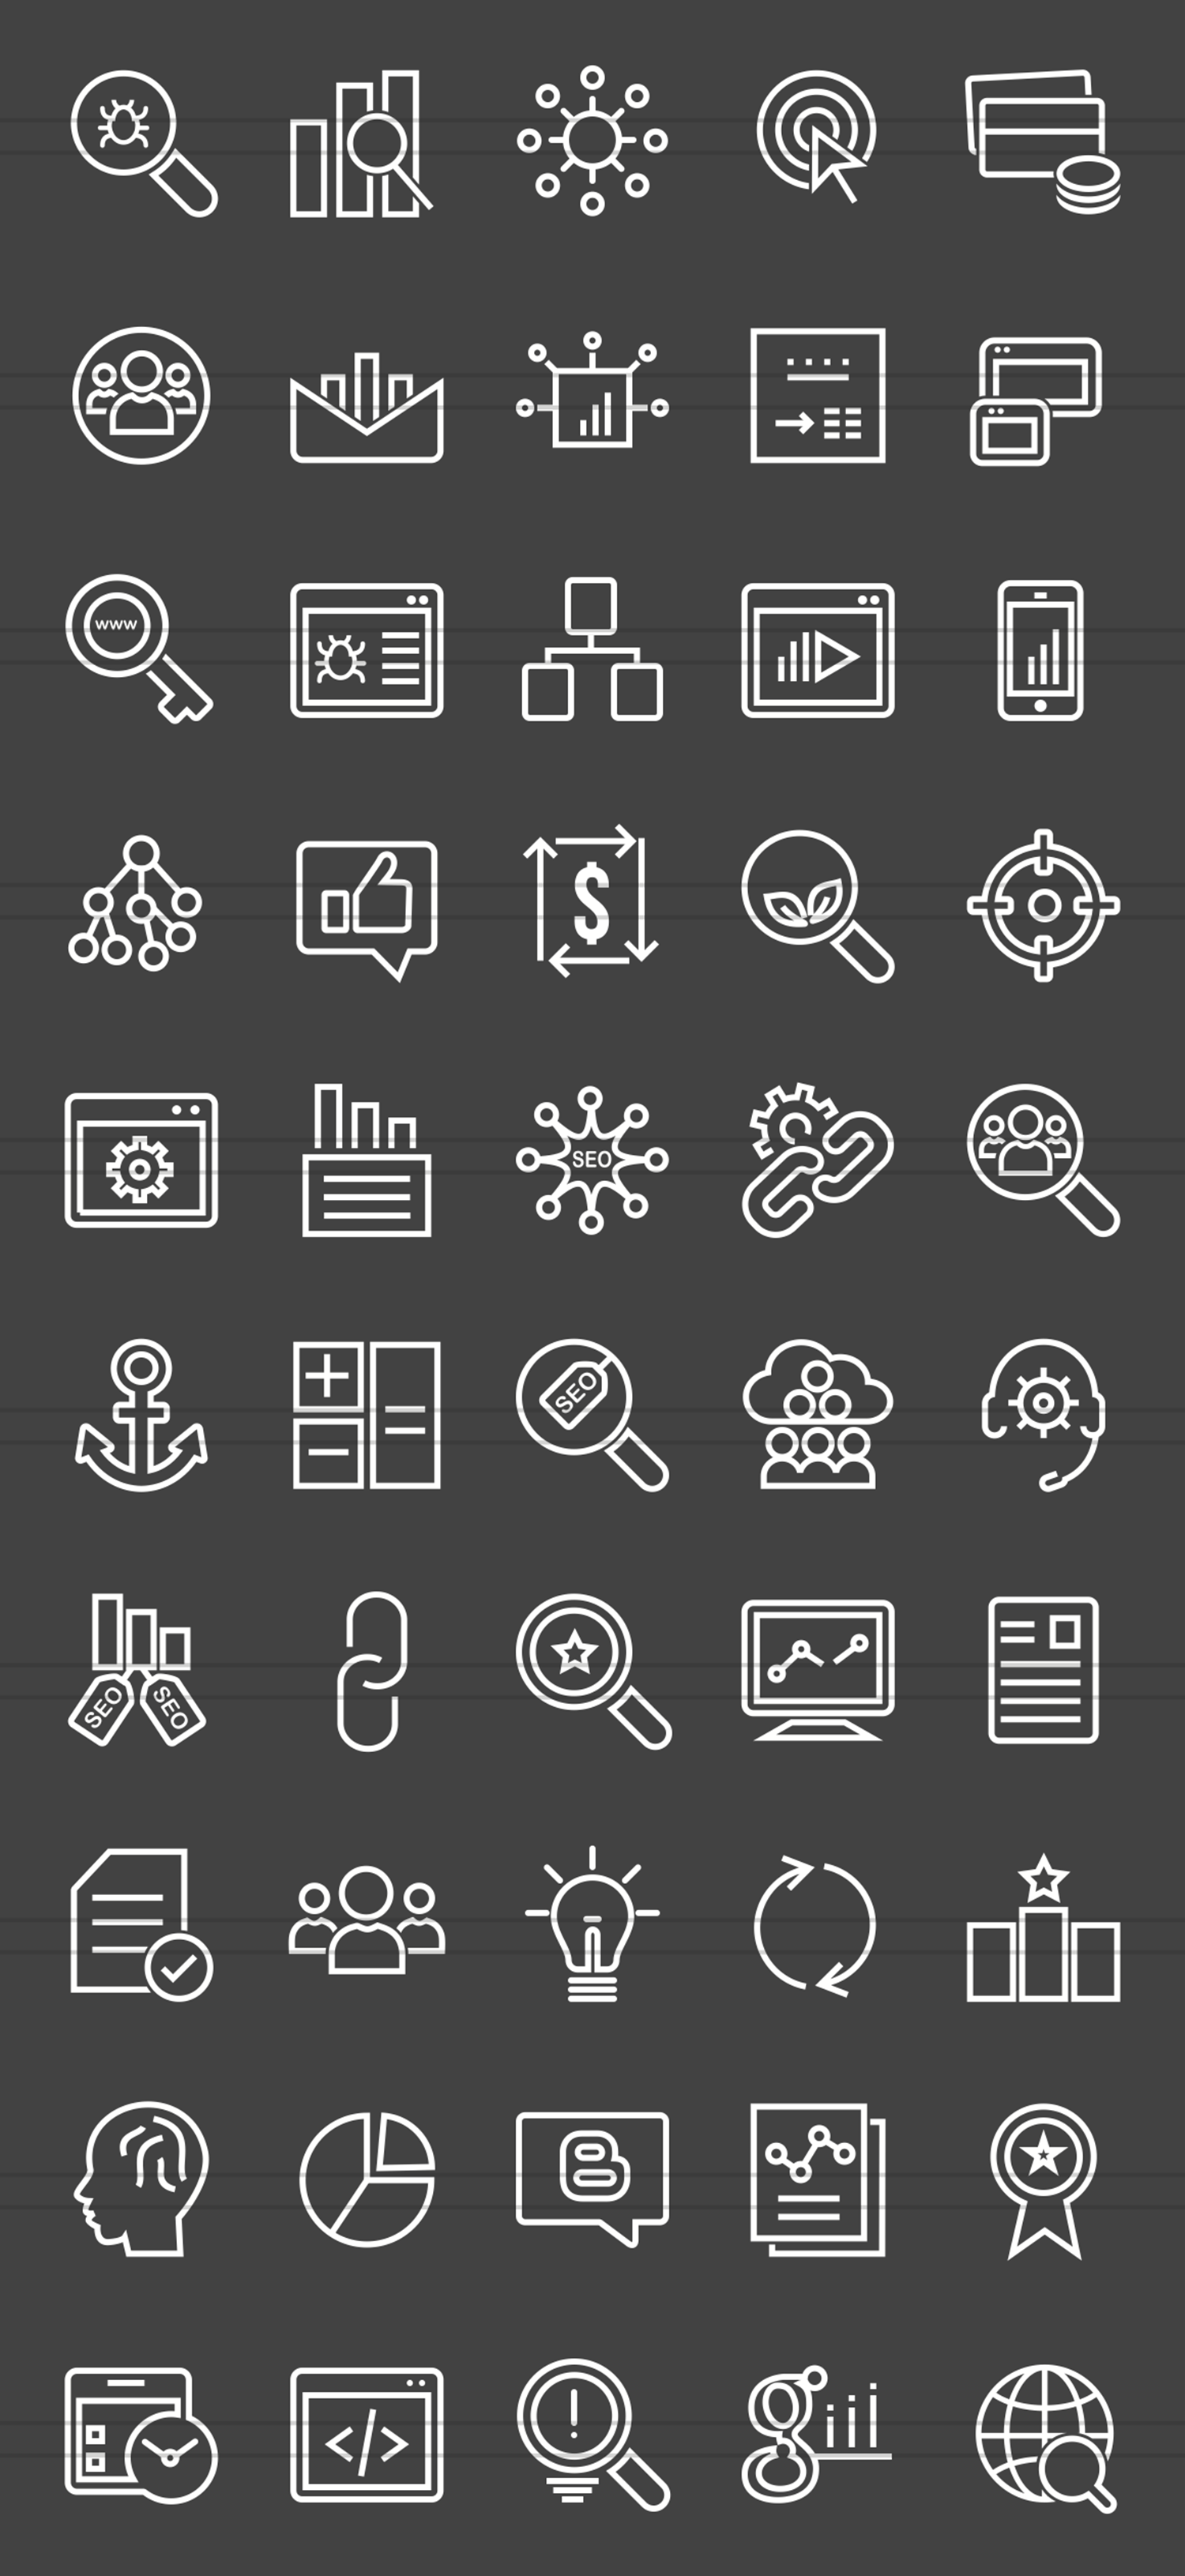 50 SEO Line Inverted Icons example image 2